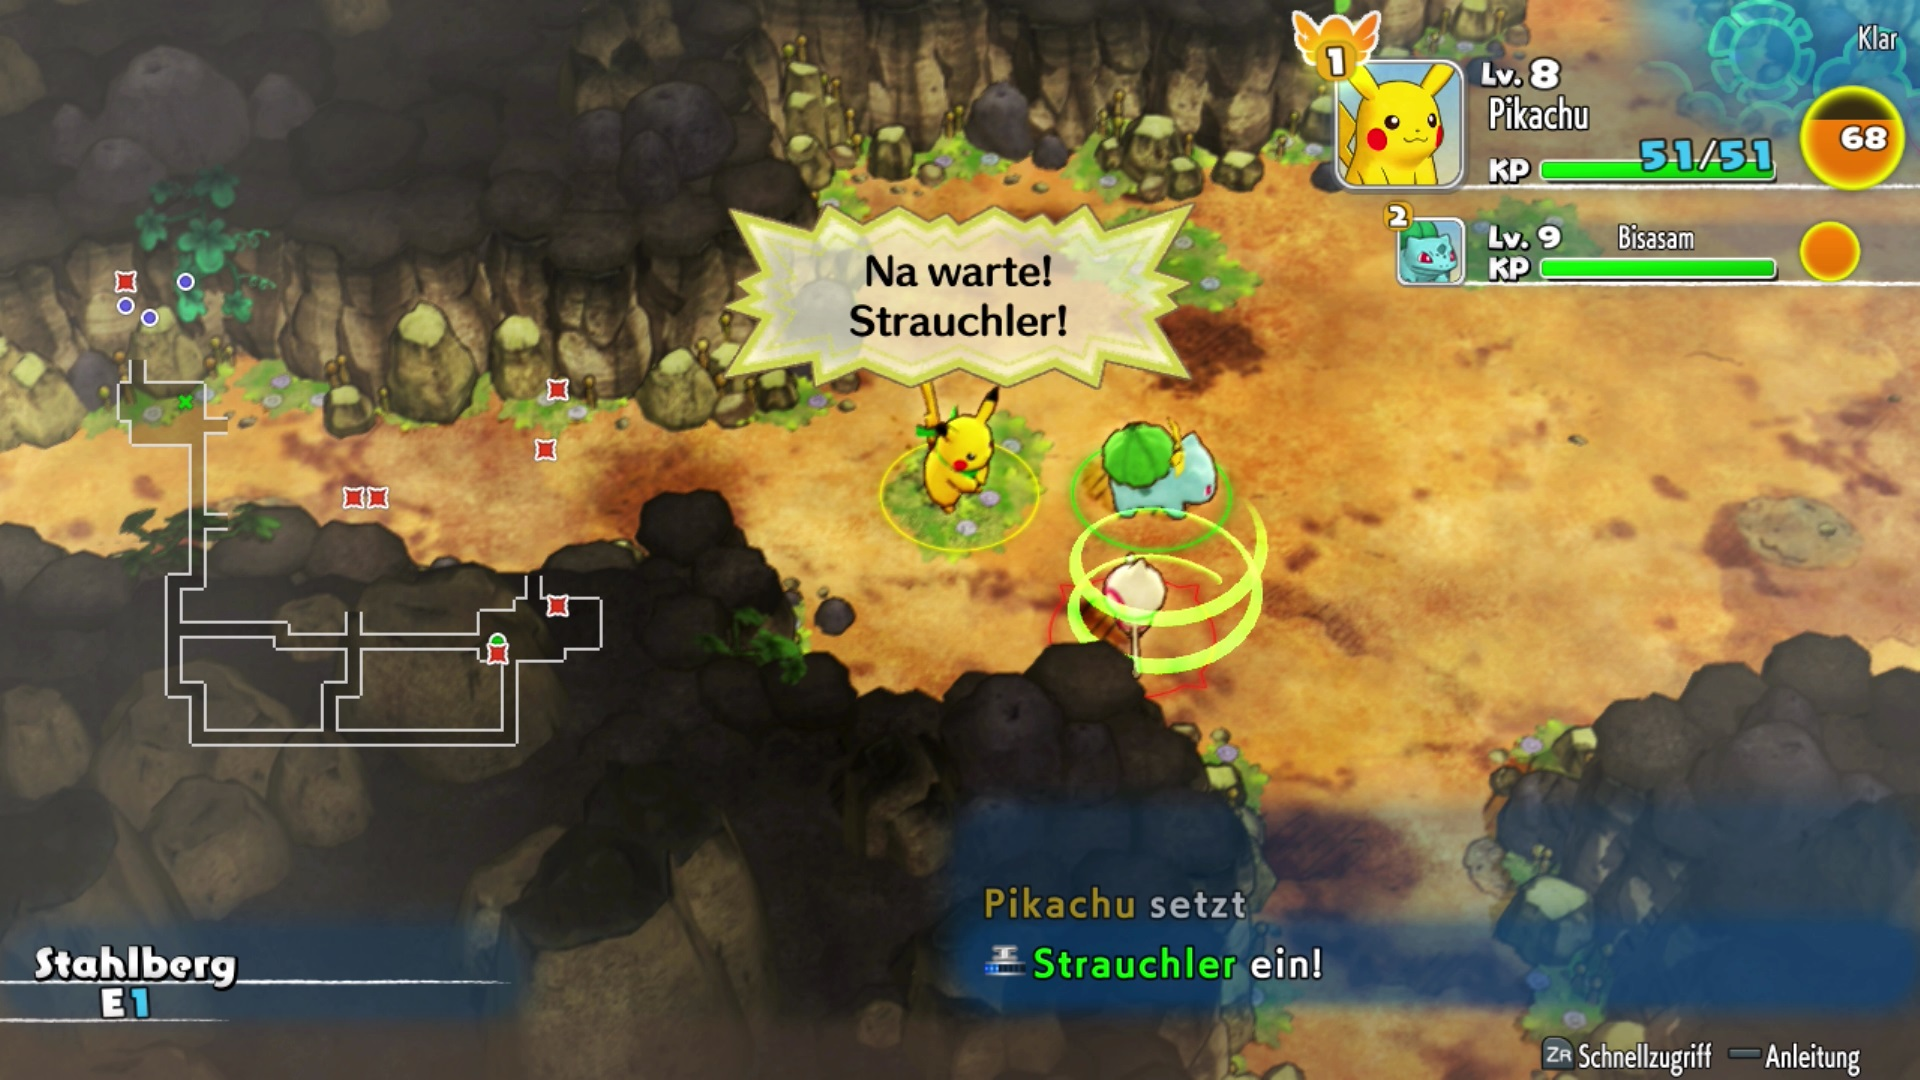 NSwitch_PokemonMysteryDungeon_09_DE.jpg